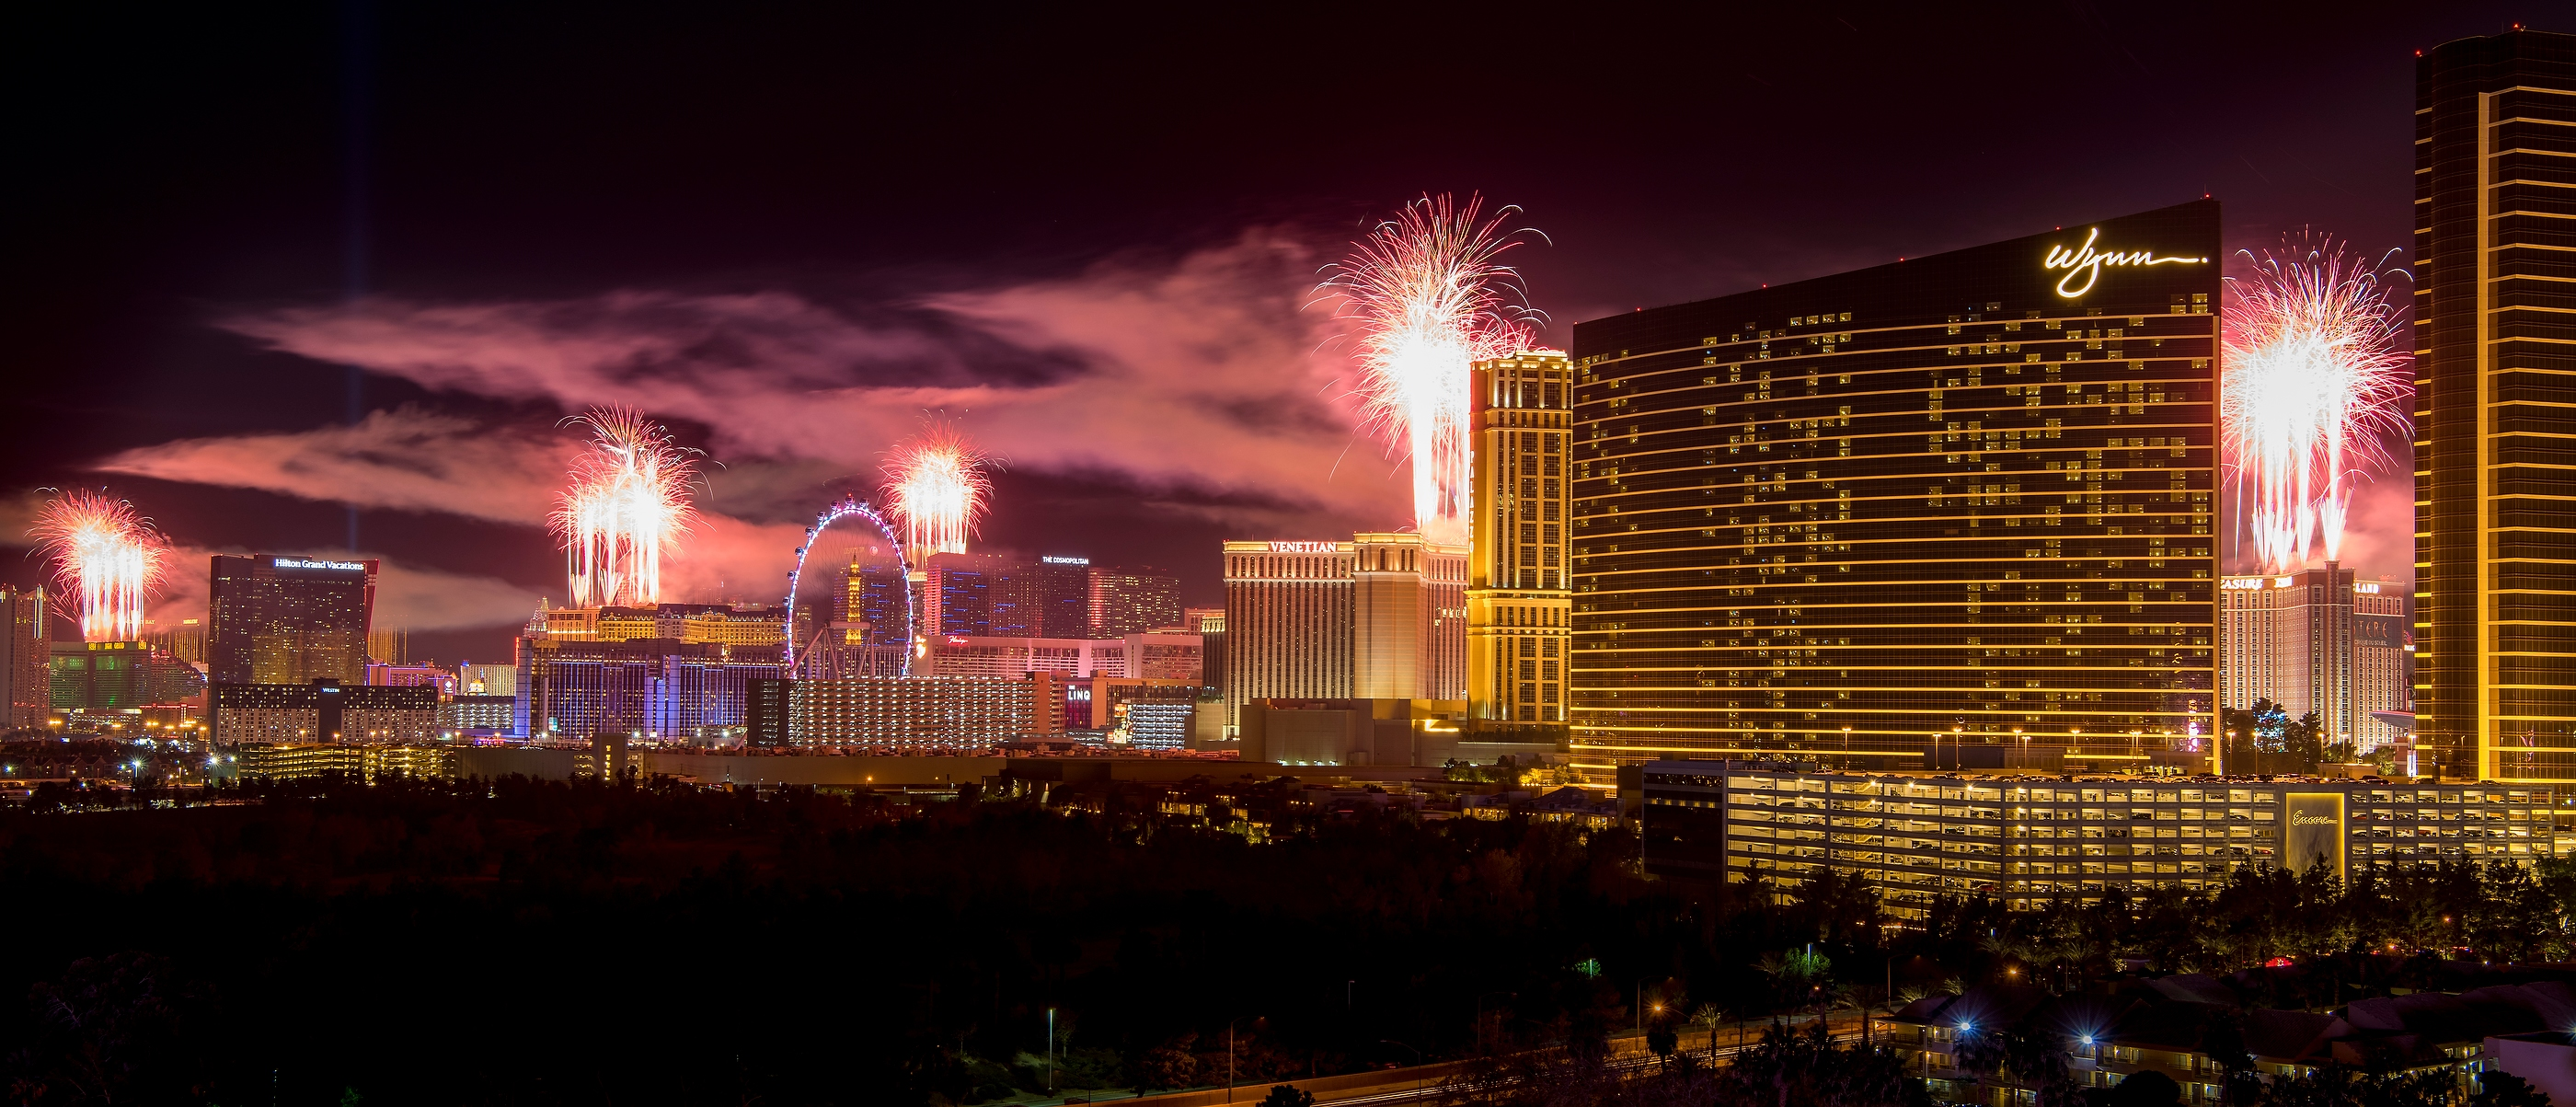 The fireworks of America's Party 2018 explode over the Las Vegas Strip to welcome the new year in this view from the rooftop of the Convention Center Marriott in Las Vegas on Monday, Jan. 1, 2018. More than 80,000 pyrotechnic effects are were launched from the rooftops of MGM Grand, Aria, Planet Hollywood, Caesars Palace, Treasure Island, The Venetian and Stratosphere. CREDIT: Mark Damon/Las Vegas News Bureau